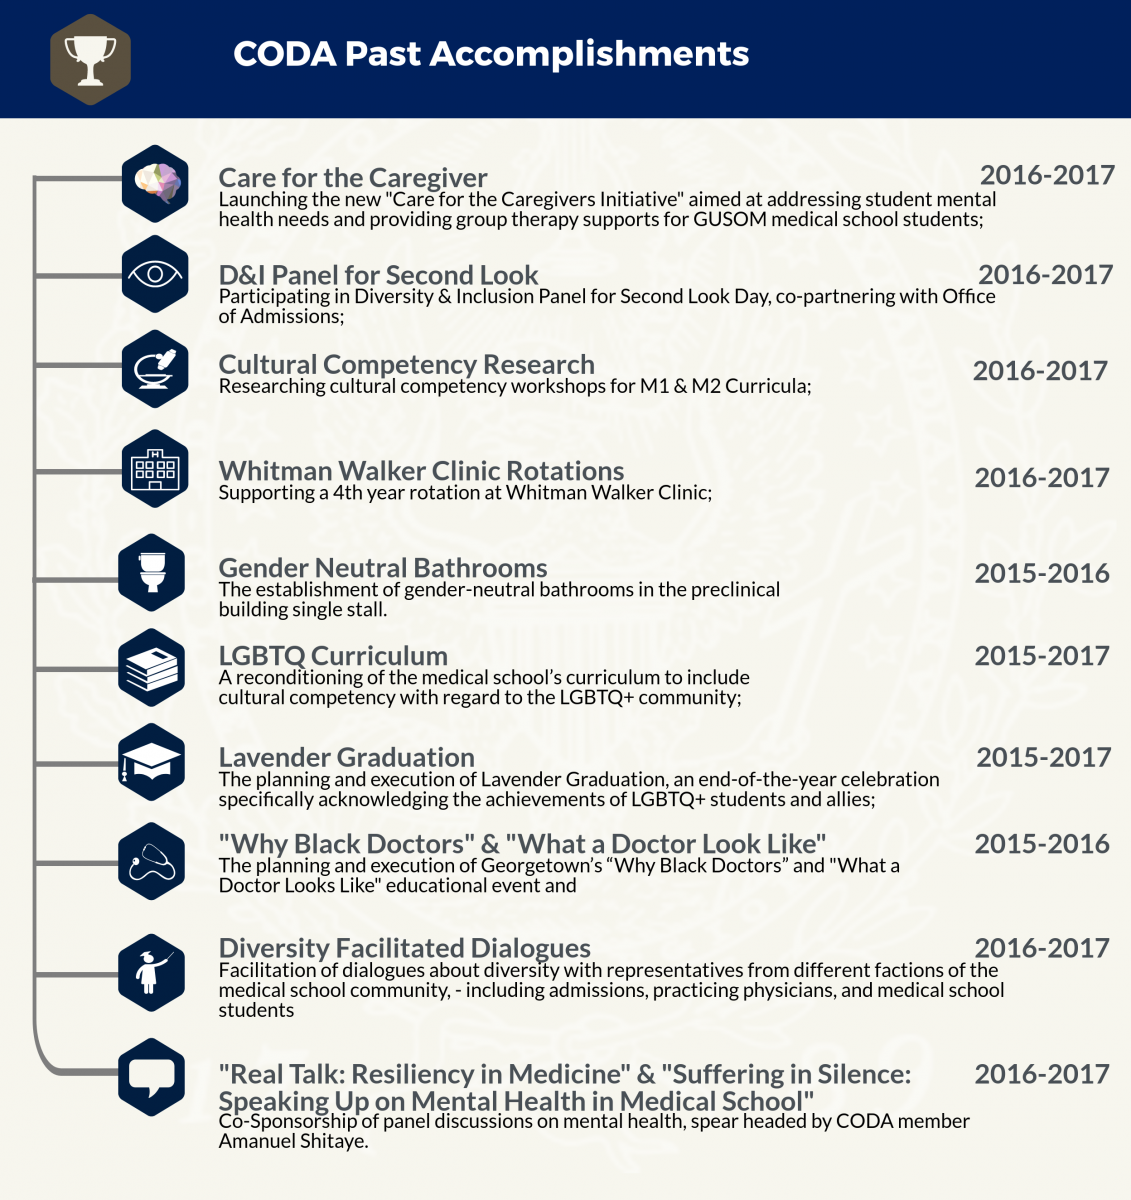 "CODA Past Accomplishments 1. Care for the Caregiver - launching an initiative addressing student mental health needs and providing group therapy supports (2016 - 2017); 2. D&I Panel for Second Look: participating in a diversity and inclusion panel for Second Look Day (2016 - 2017); 3. Cultural Competency Research - researching cultural competency workshops for M1 and M2 curricula (2016 - 2017); 4. Whitman Walker Clinic Rotations: supporting a 4th year rotation at the clinic (2016 - 2017); 5. Establishment of a gender neutral bathroom in the pre-clinical building (2015 - 2016); 6. Reconditioning of the curriculum to include cultural competency with regard to the LGBTQ+ community (2015 - 2017); 7. Planning and execution of Lavender Graduation, a celebration of the achievements of LGBTQ+ students and allies (2015 - 2017).  8. The planning and execution of Georgetown's ""Why Black Doctors"" and ""What a Doctor Looks Like"" educational events (2015 - 2016); 9. Facilitation of dialogues on diversity (2016 - 2017); 10. Co-sponsorship of panel discussions on mental health, spear headed by CODA member Amanuel Shitaye (2016 - 2017)."